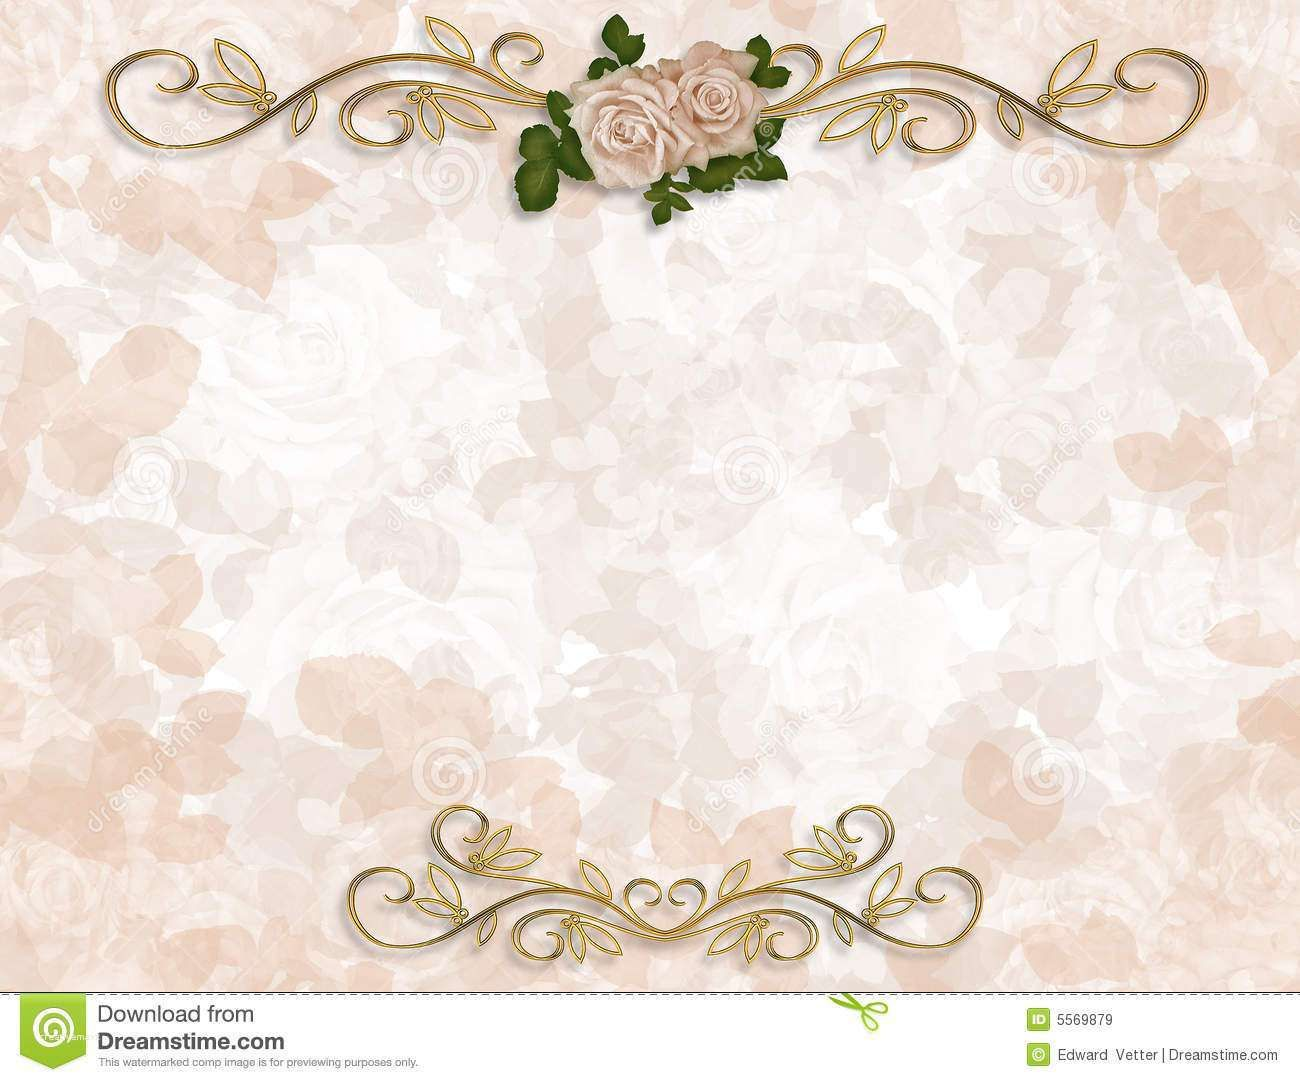 Fresh Wedding Invitation Background Designs Free Download Floral